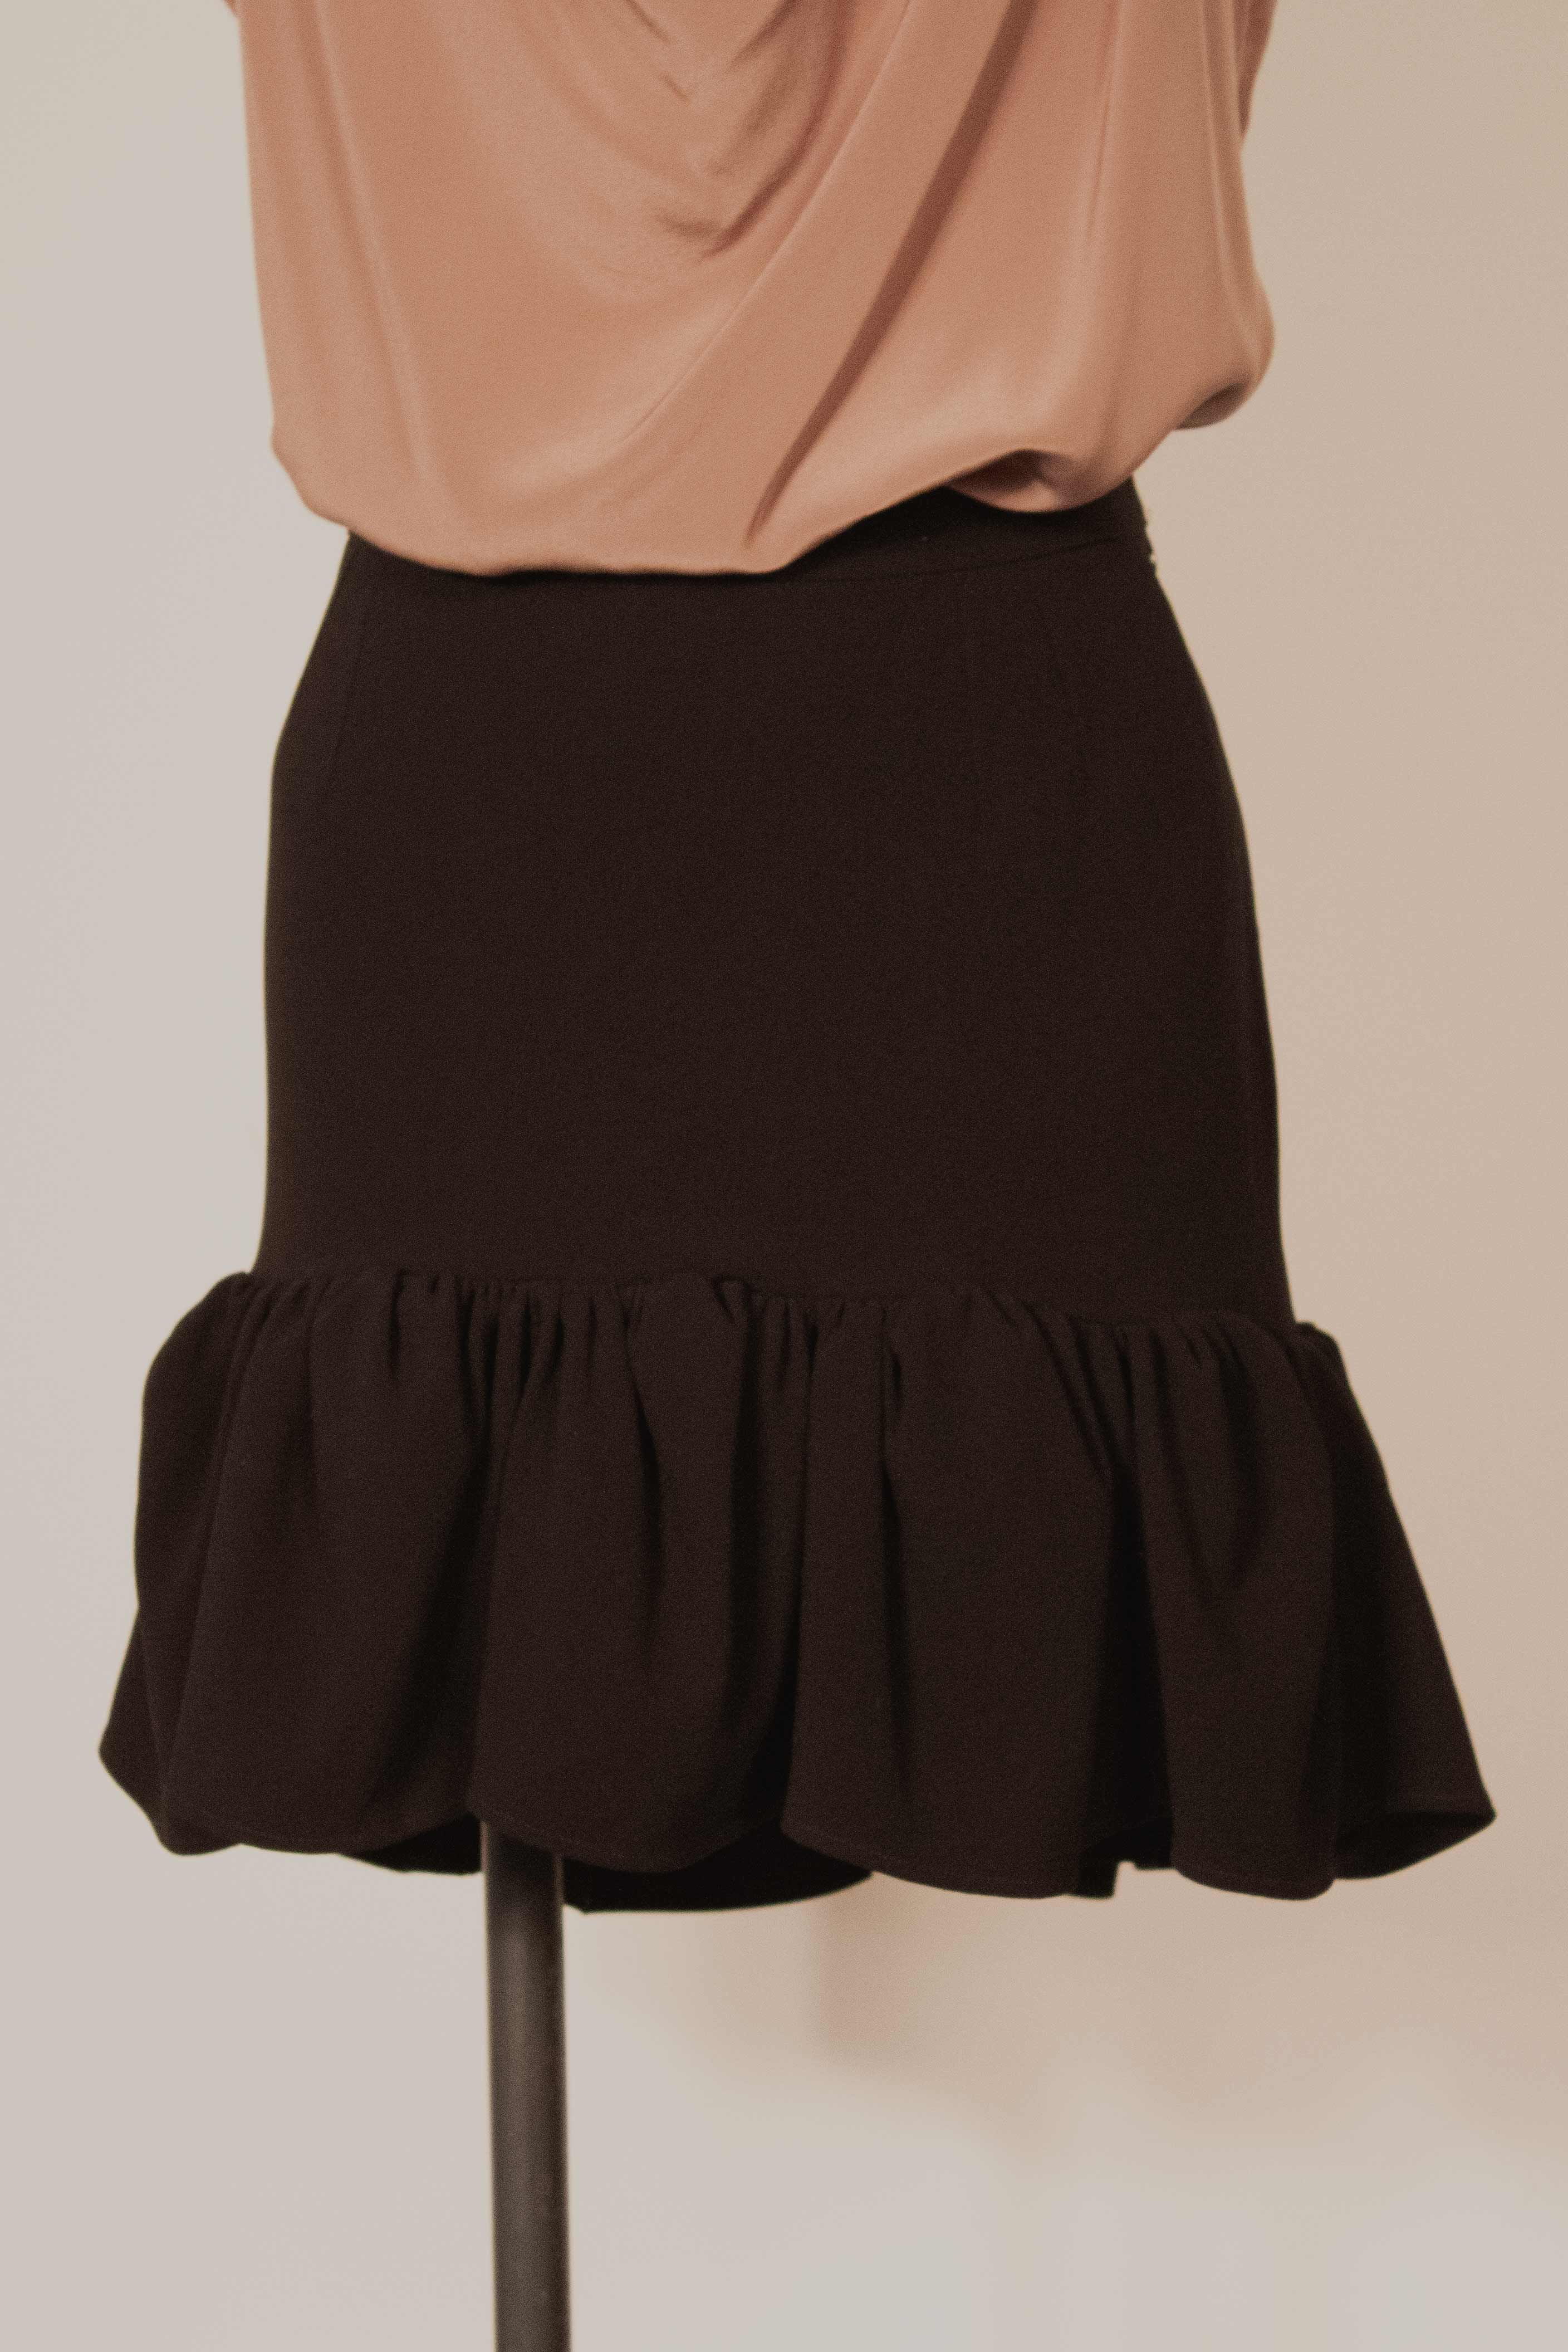 Balenciaga black knit ruffled mini-skirt